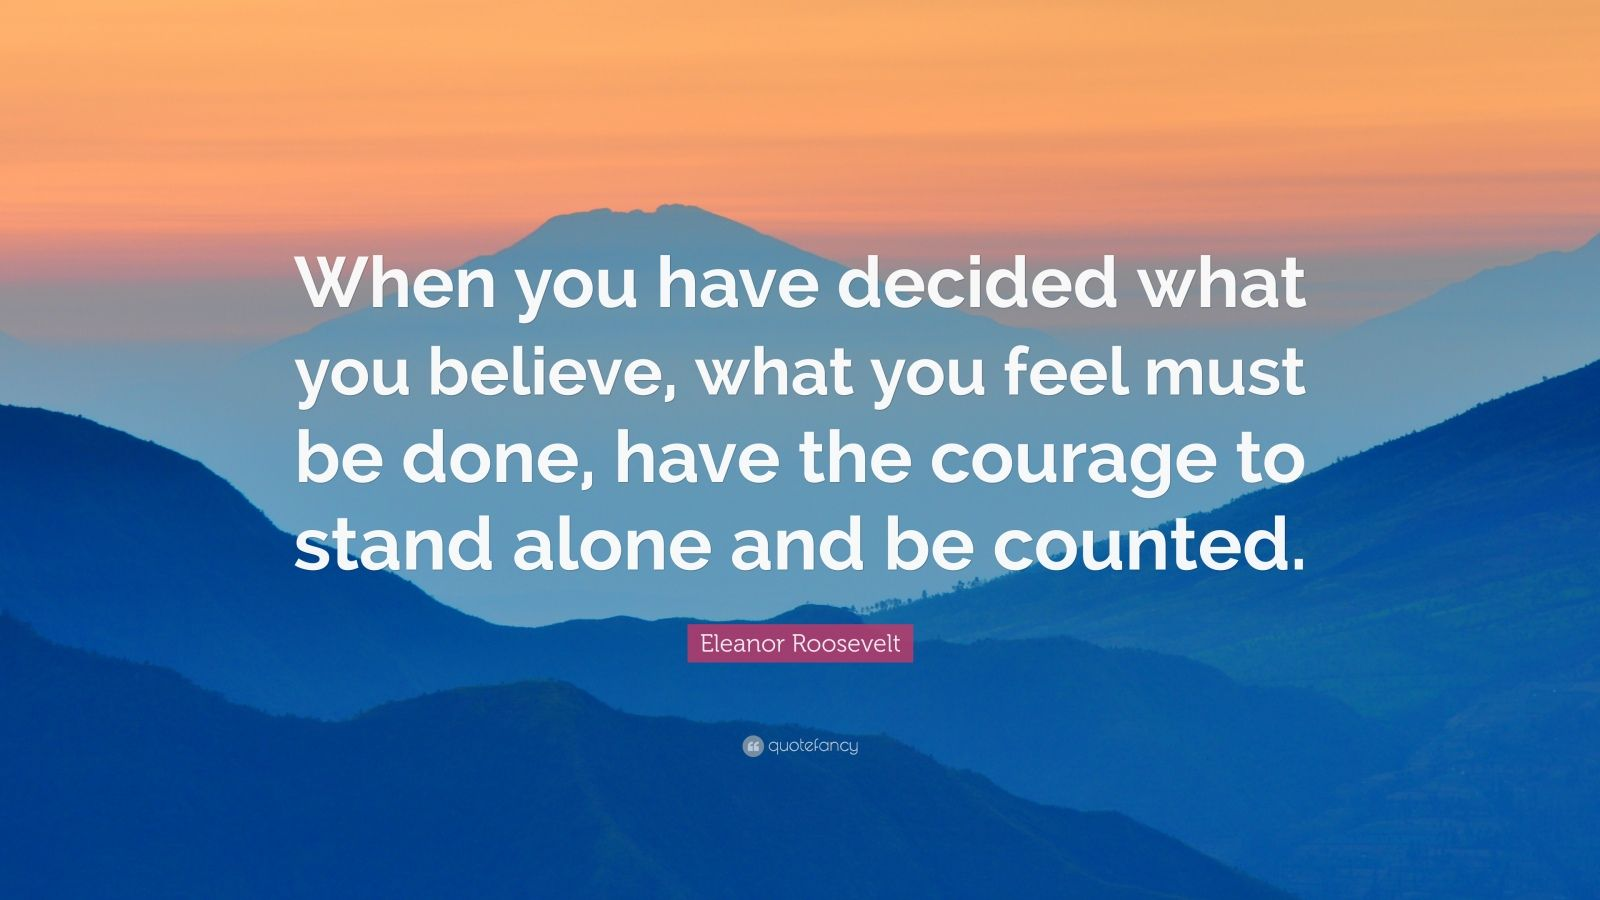 """Eleanor Roosevelt Quote: """"When you have decided what you believe, what you feel must be done, have the courage to stand alone and be counted."""""""